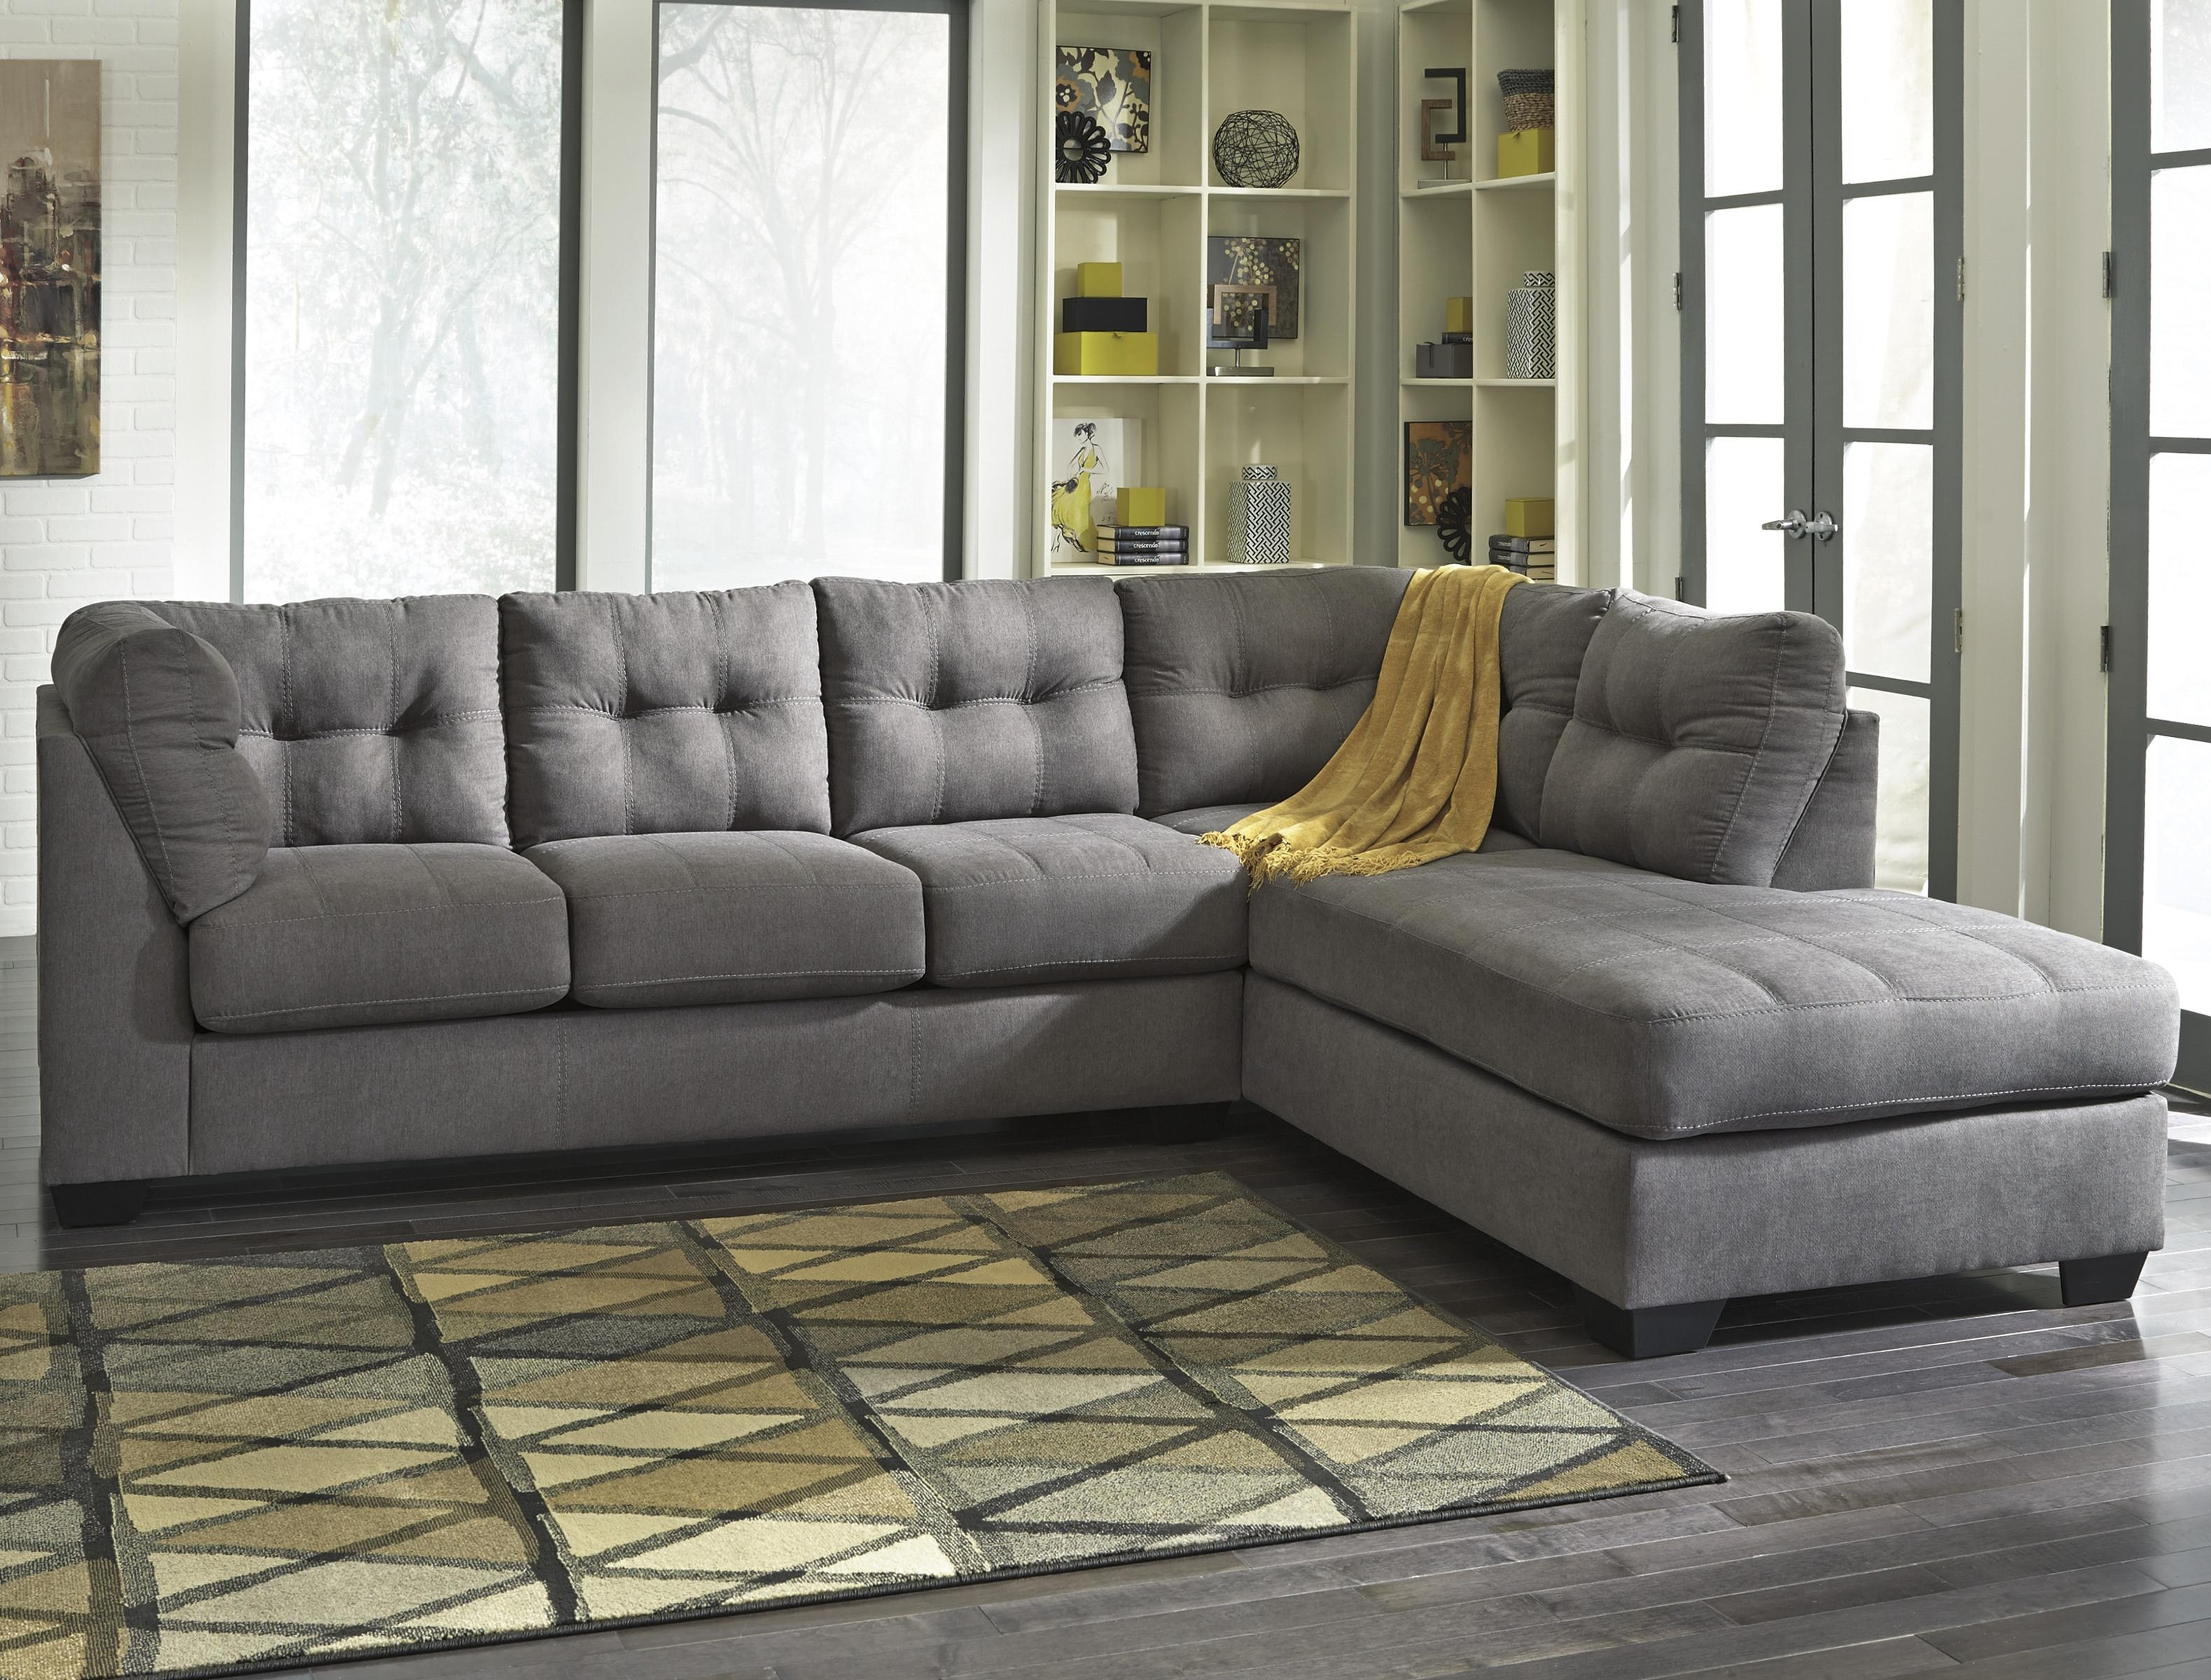 Featured Image of Arrowmask 2 Piece Sectionals With Sleeper & Right Facing Chaise